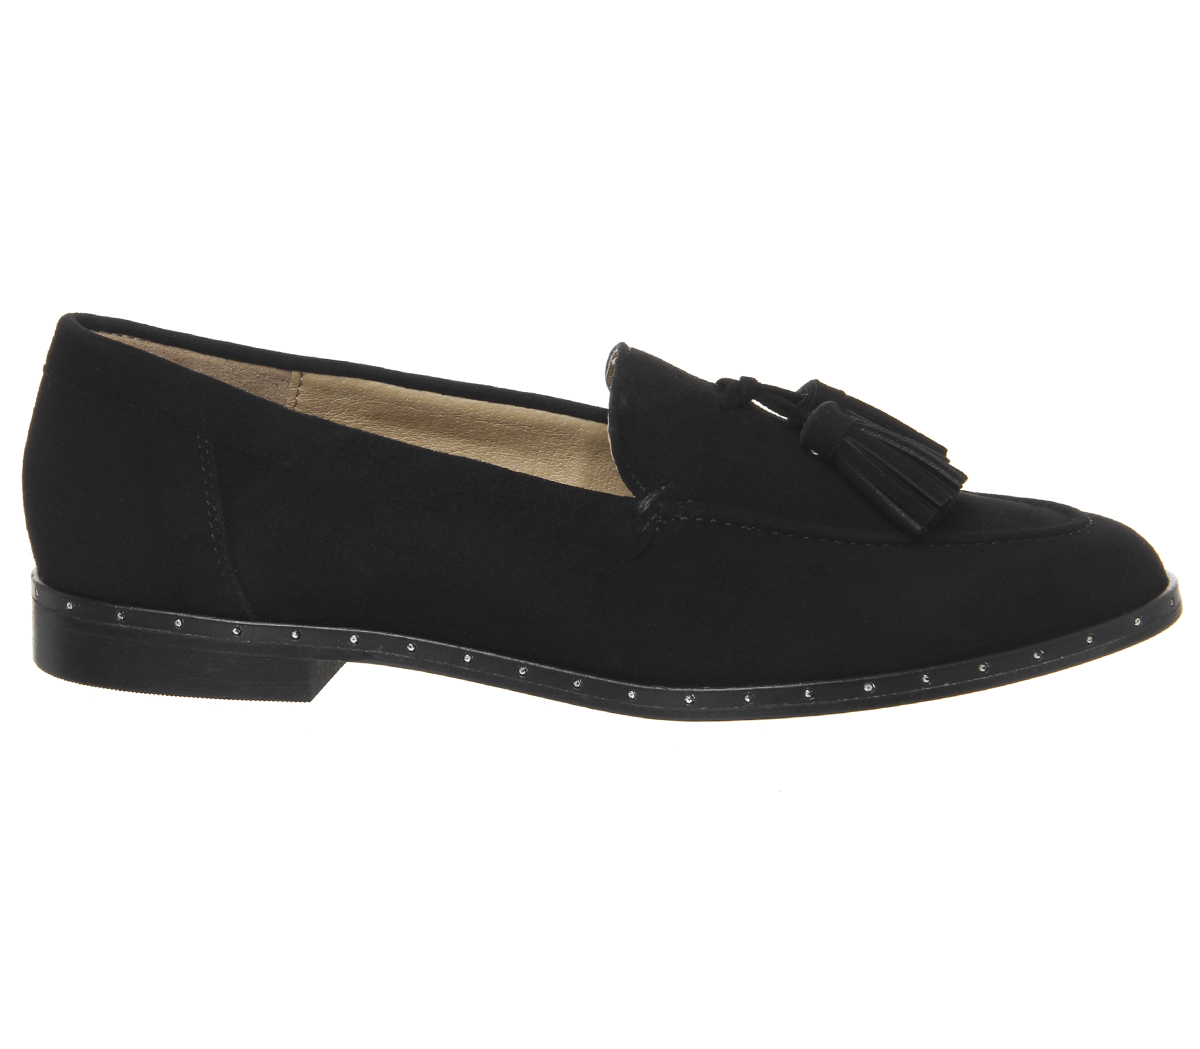 Retro Office Studded Loafers Tassel With Rand Flats Black Womens Suede FRvqUU